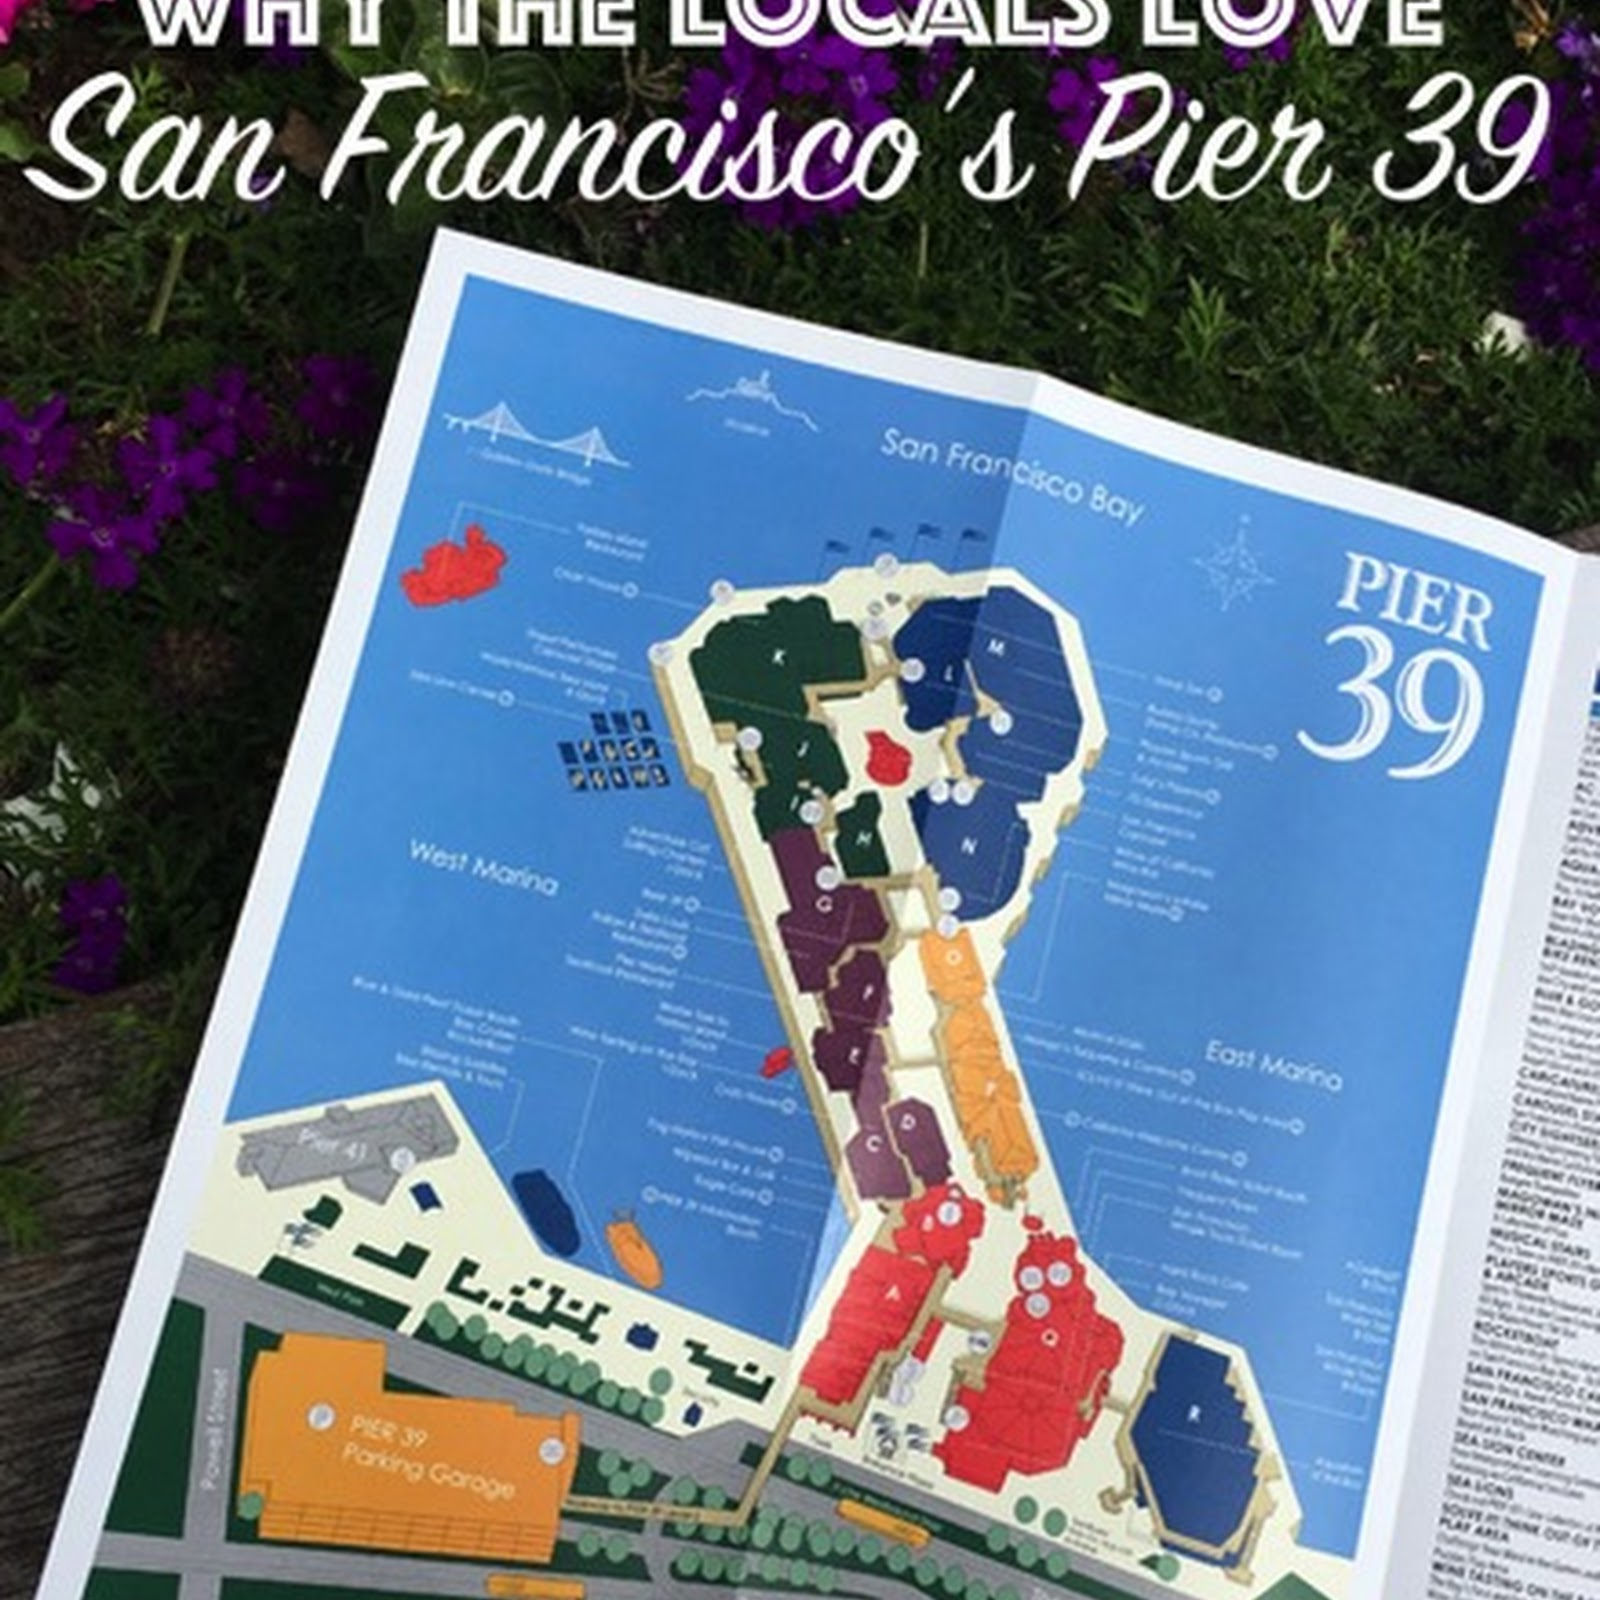 Why the locals love San Francisco's Pier 39